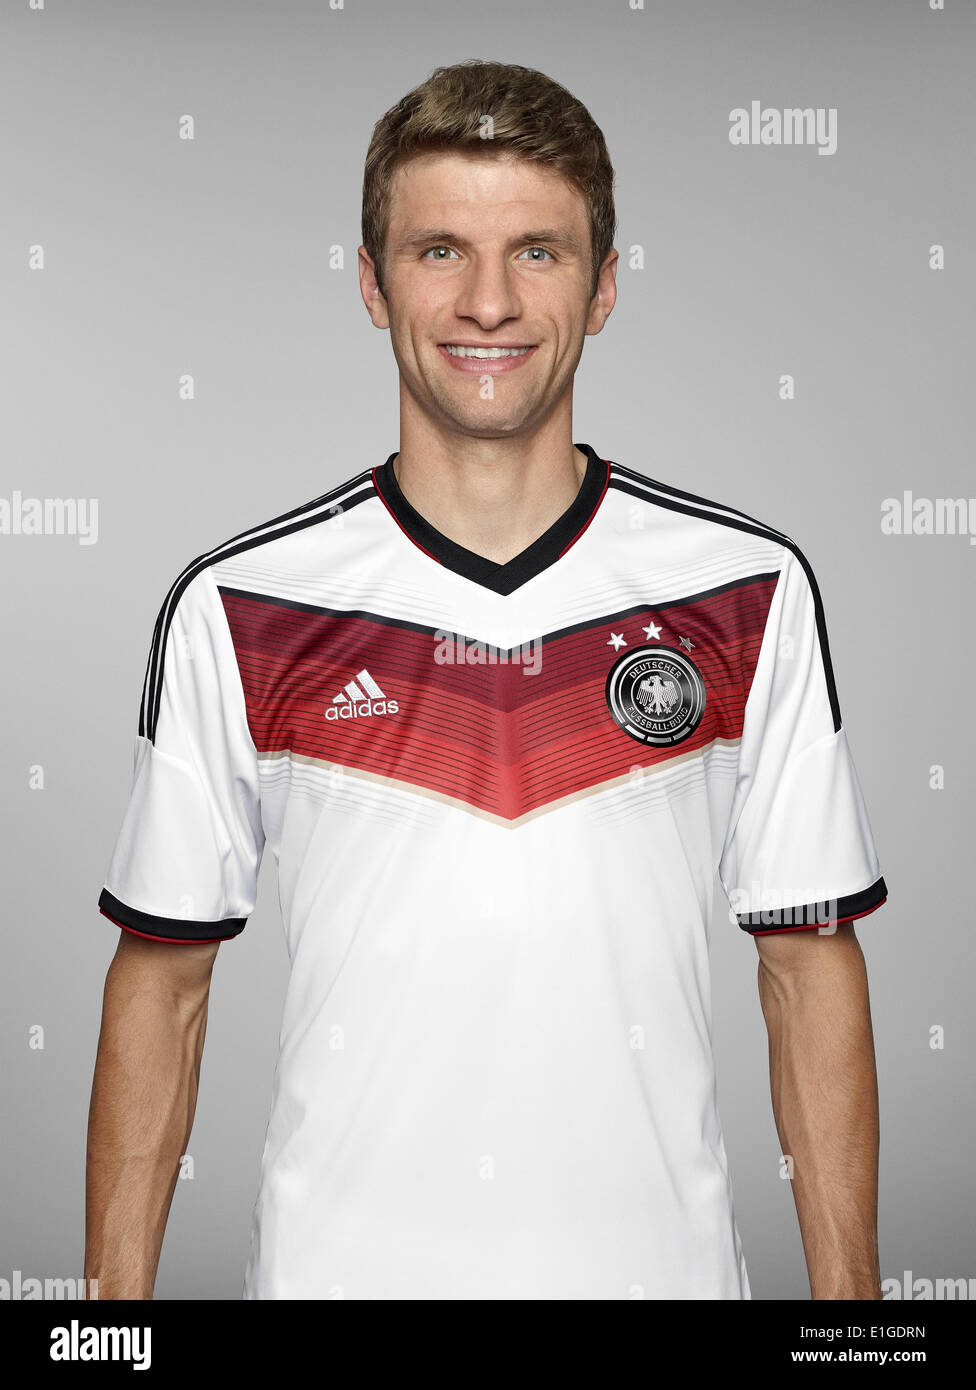 FIFA World Cup 2014 - photocall Team Germany, 24 May 2014 in Passeier, Italy: Thomas Mueller. Photo credit: Bongarts/Getty Images/German Football Association/dpa (editorial use only) - Stock Image